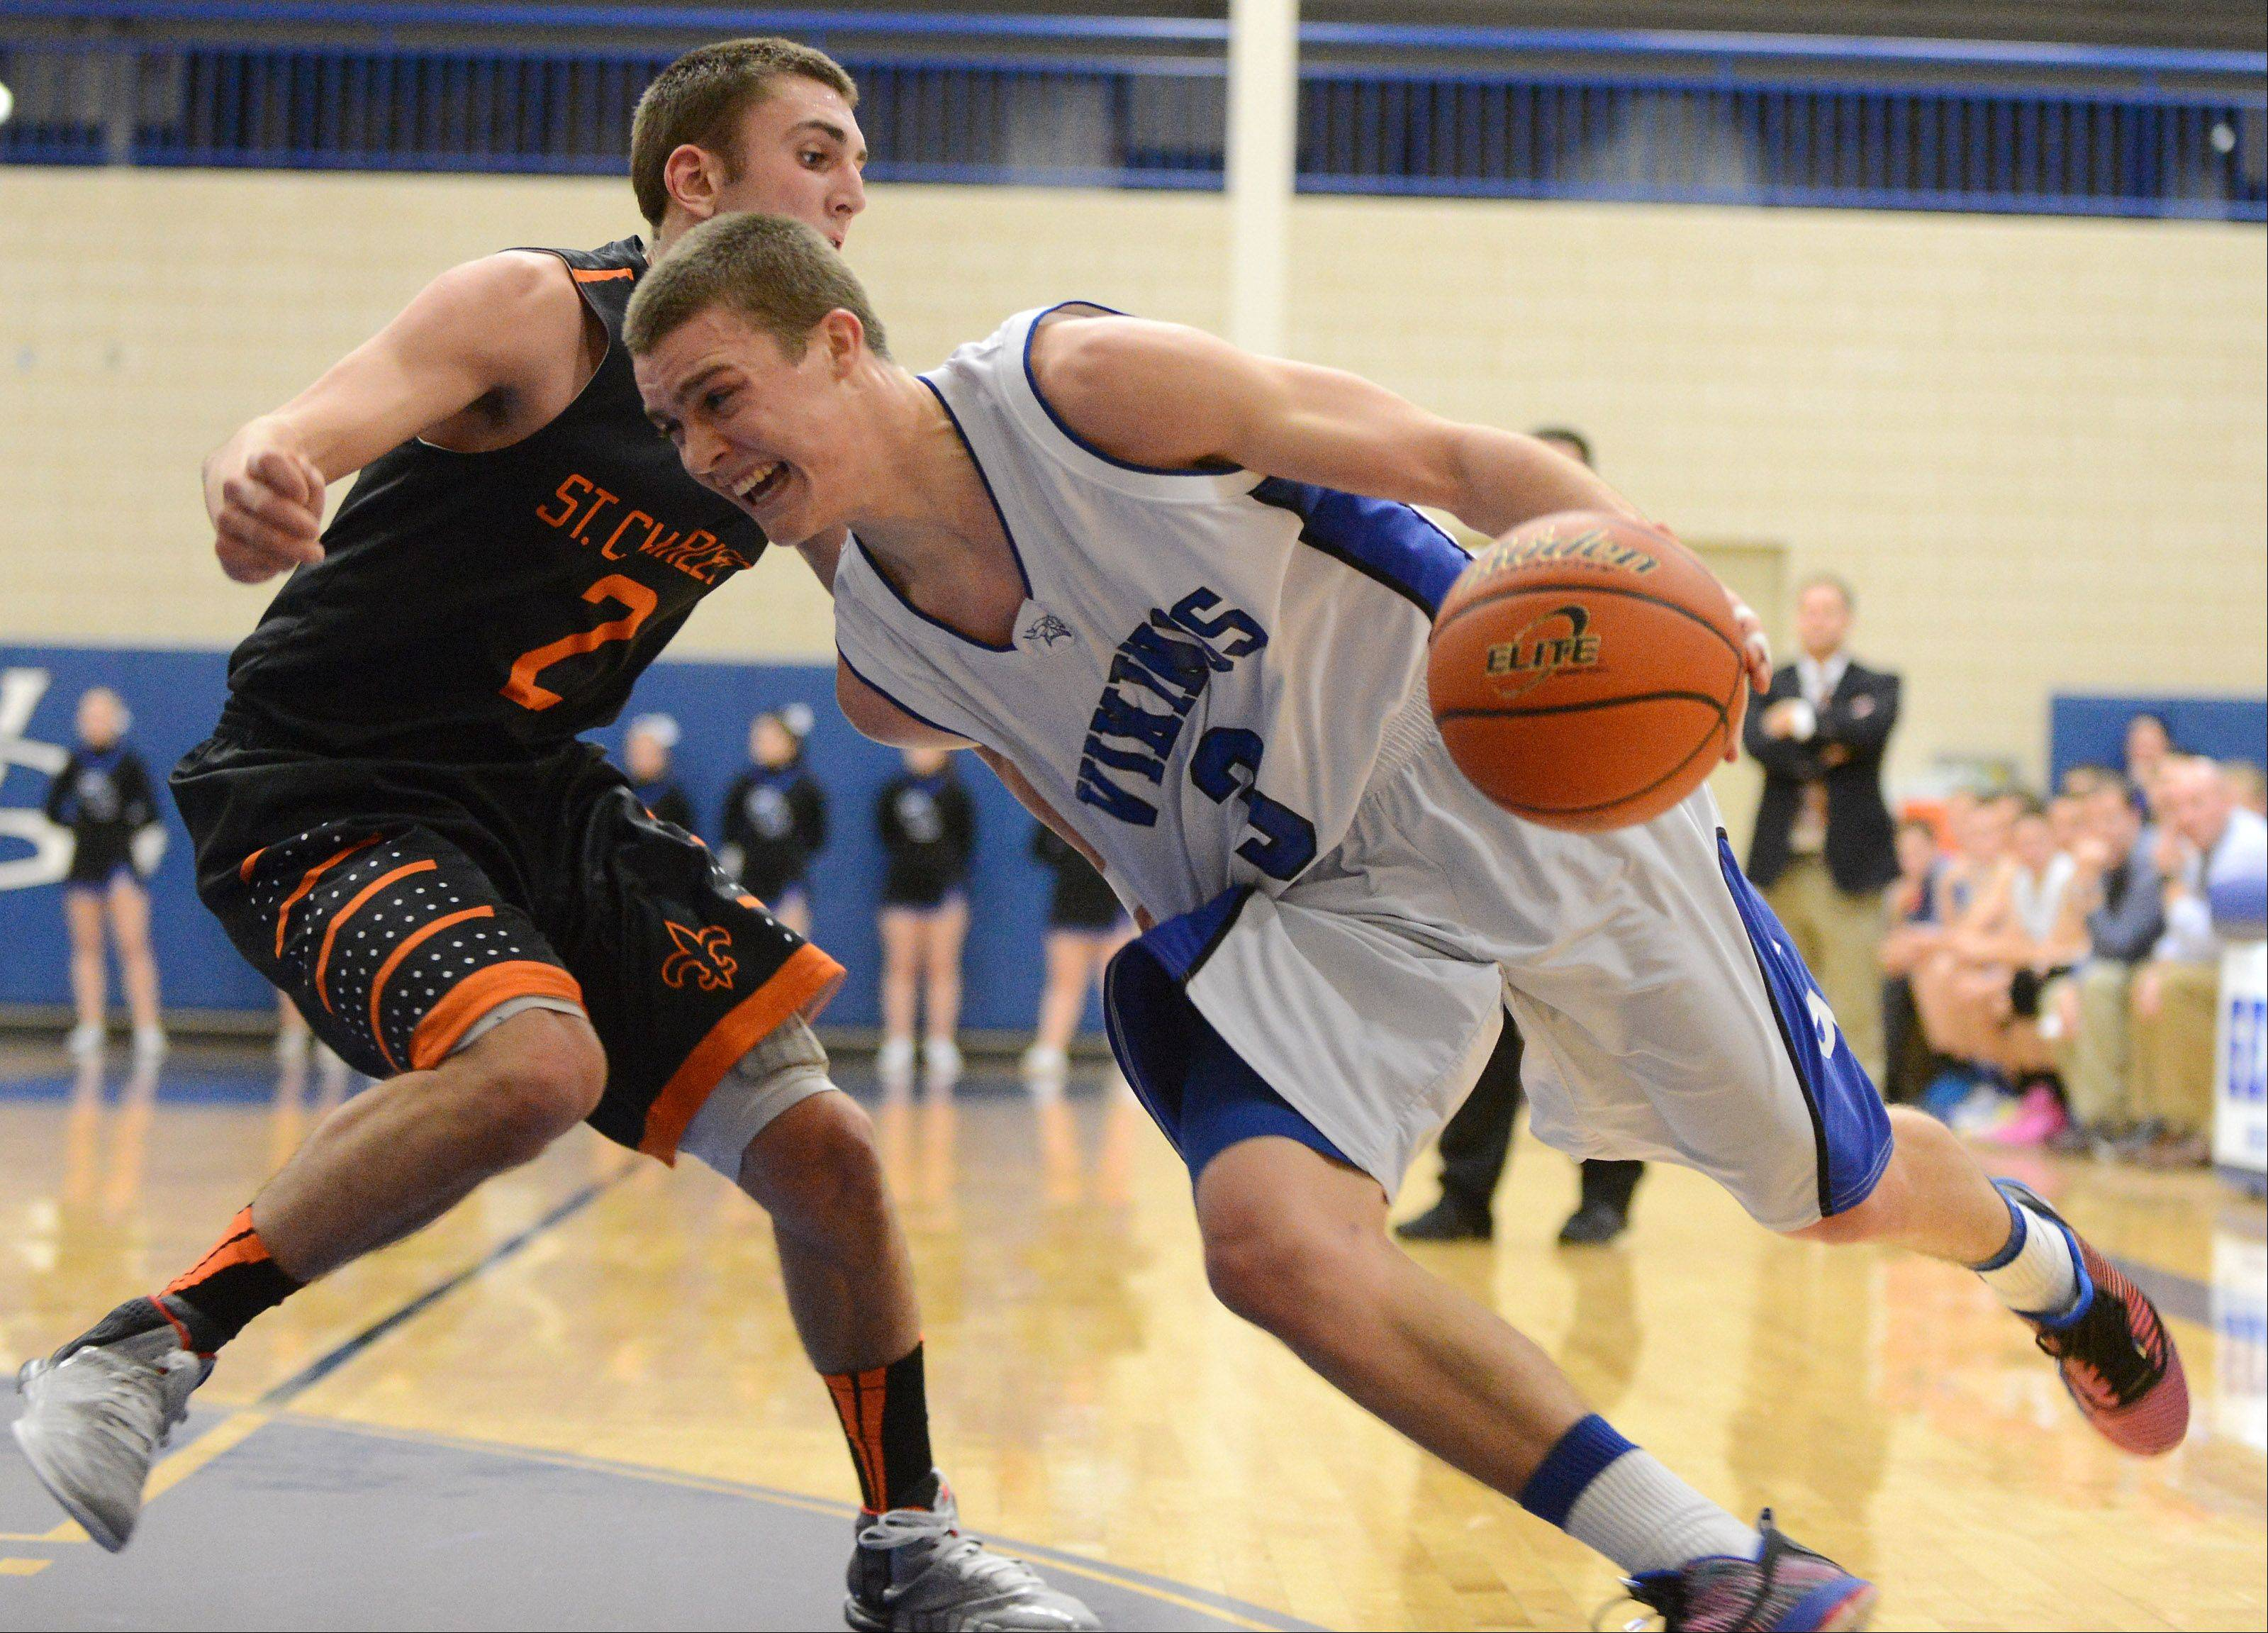 Geneva�s Pace Temple looks for room on the baseline with St. Charles East�s Dom Adduci defending.